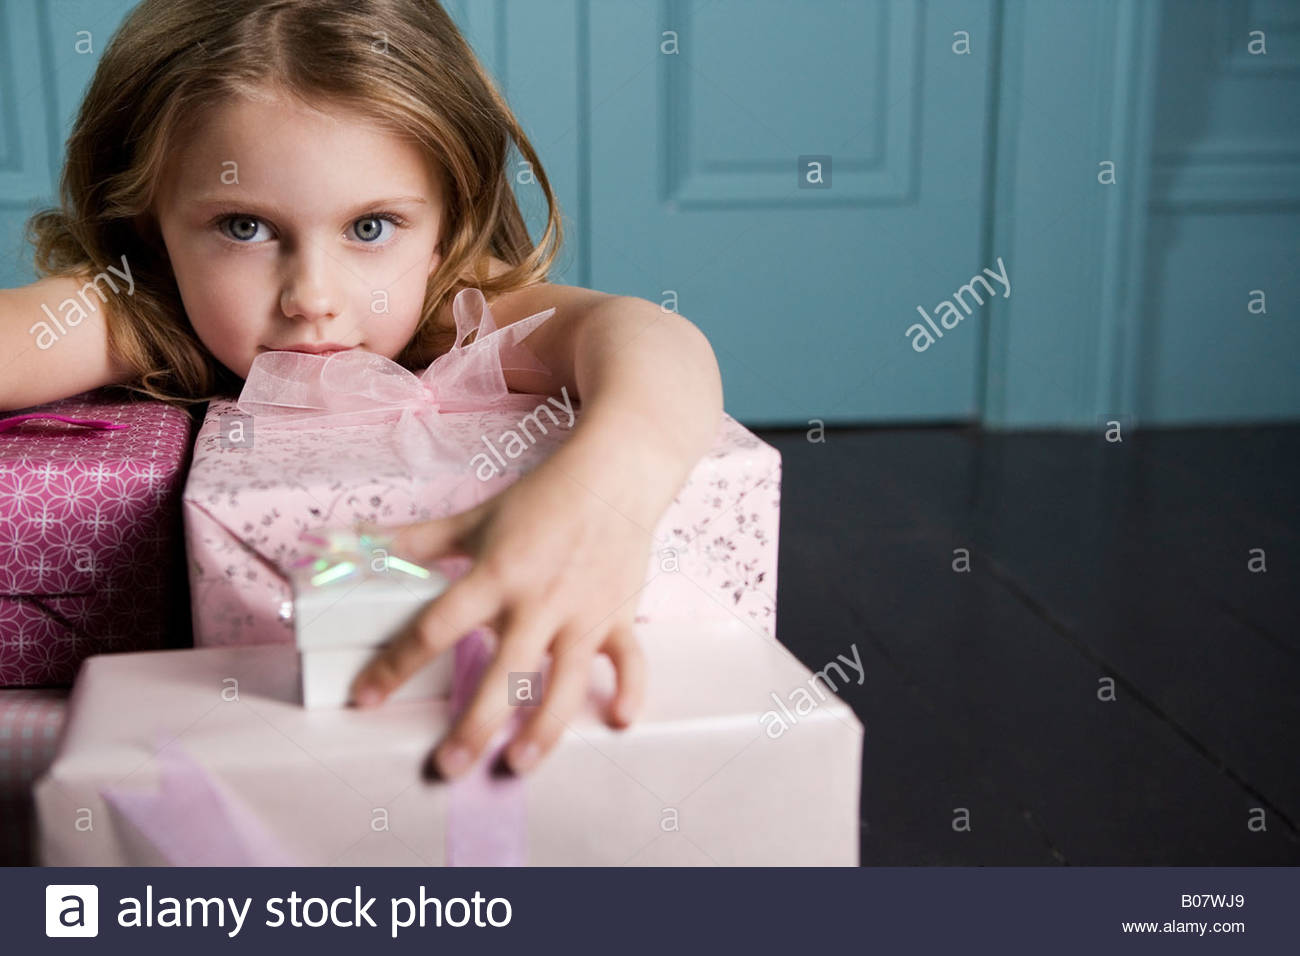 Young girl with birthday presents - Stock Image